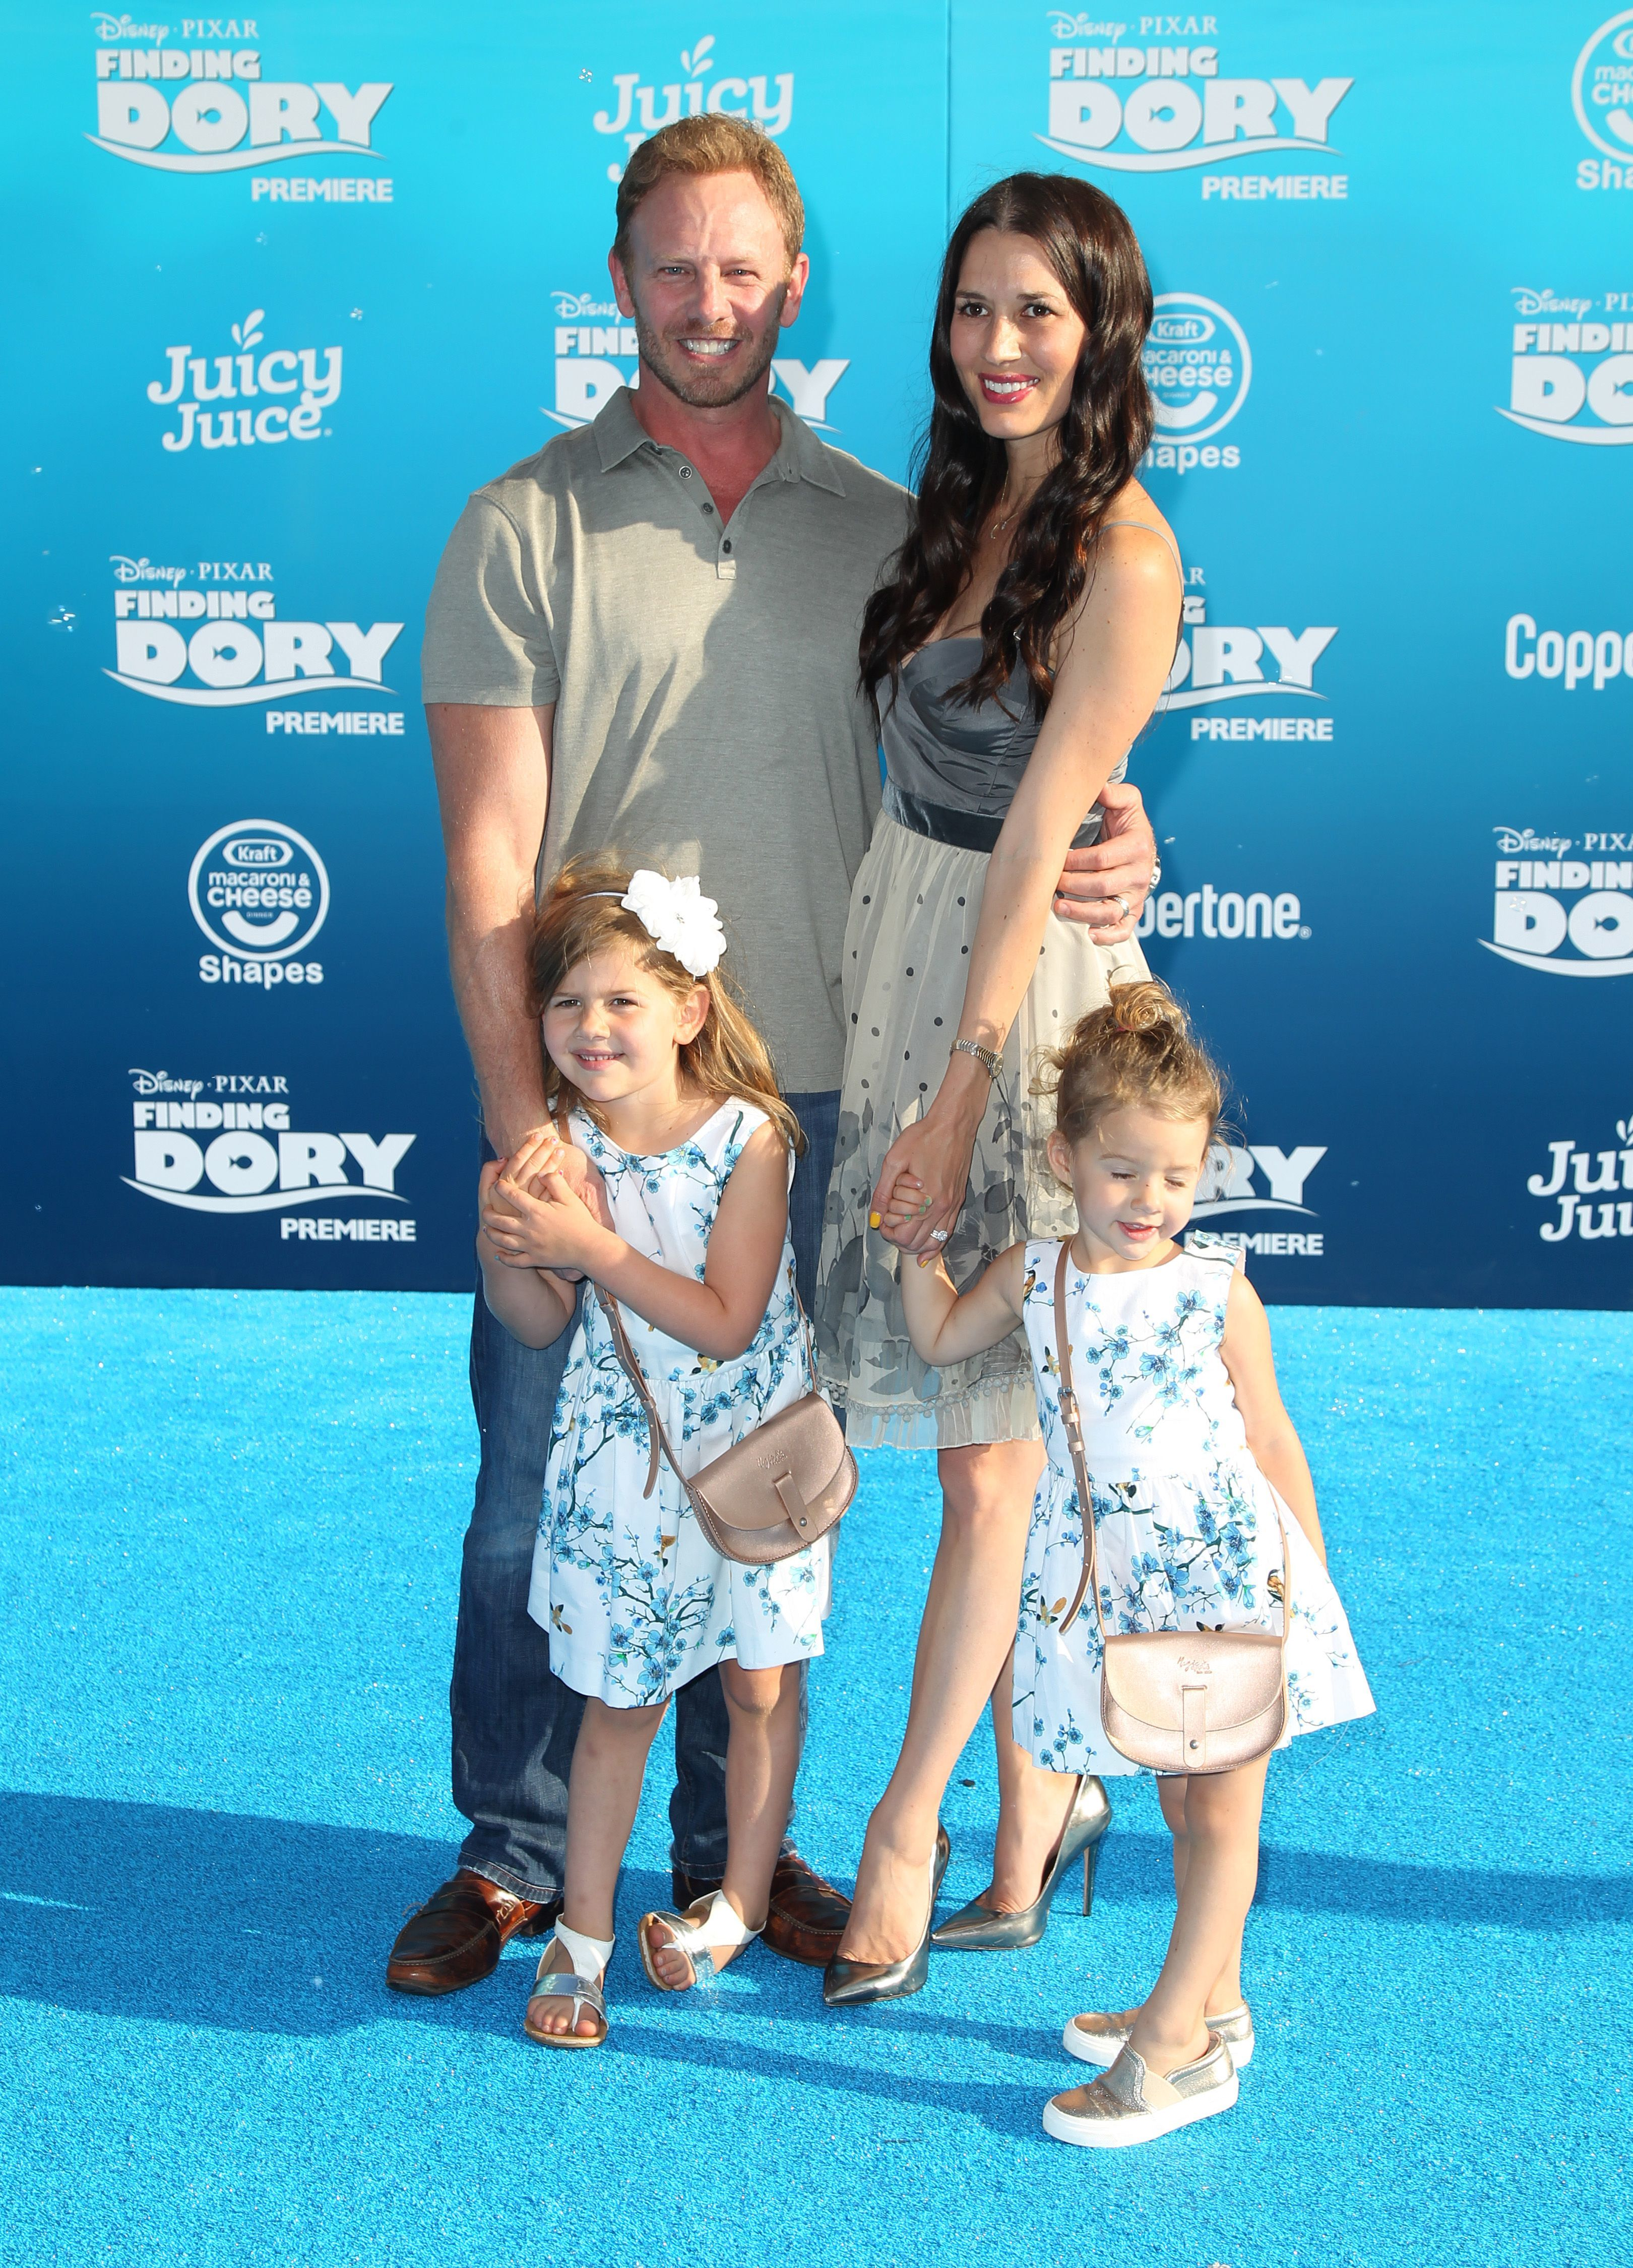 Ian Ziering on how GoodNites have helped his family: